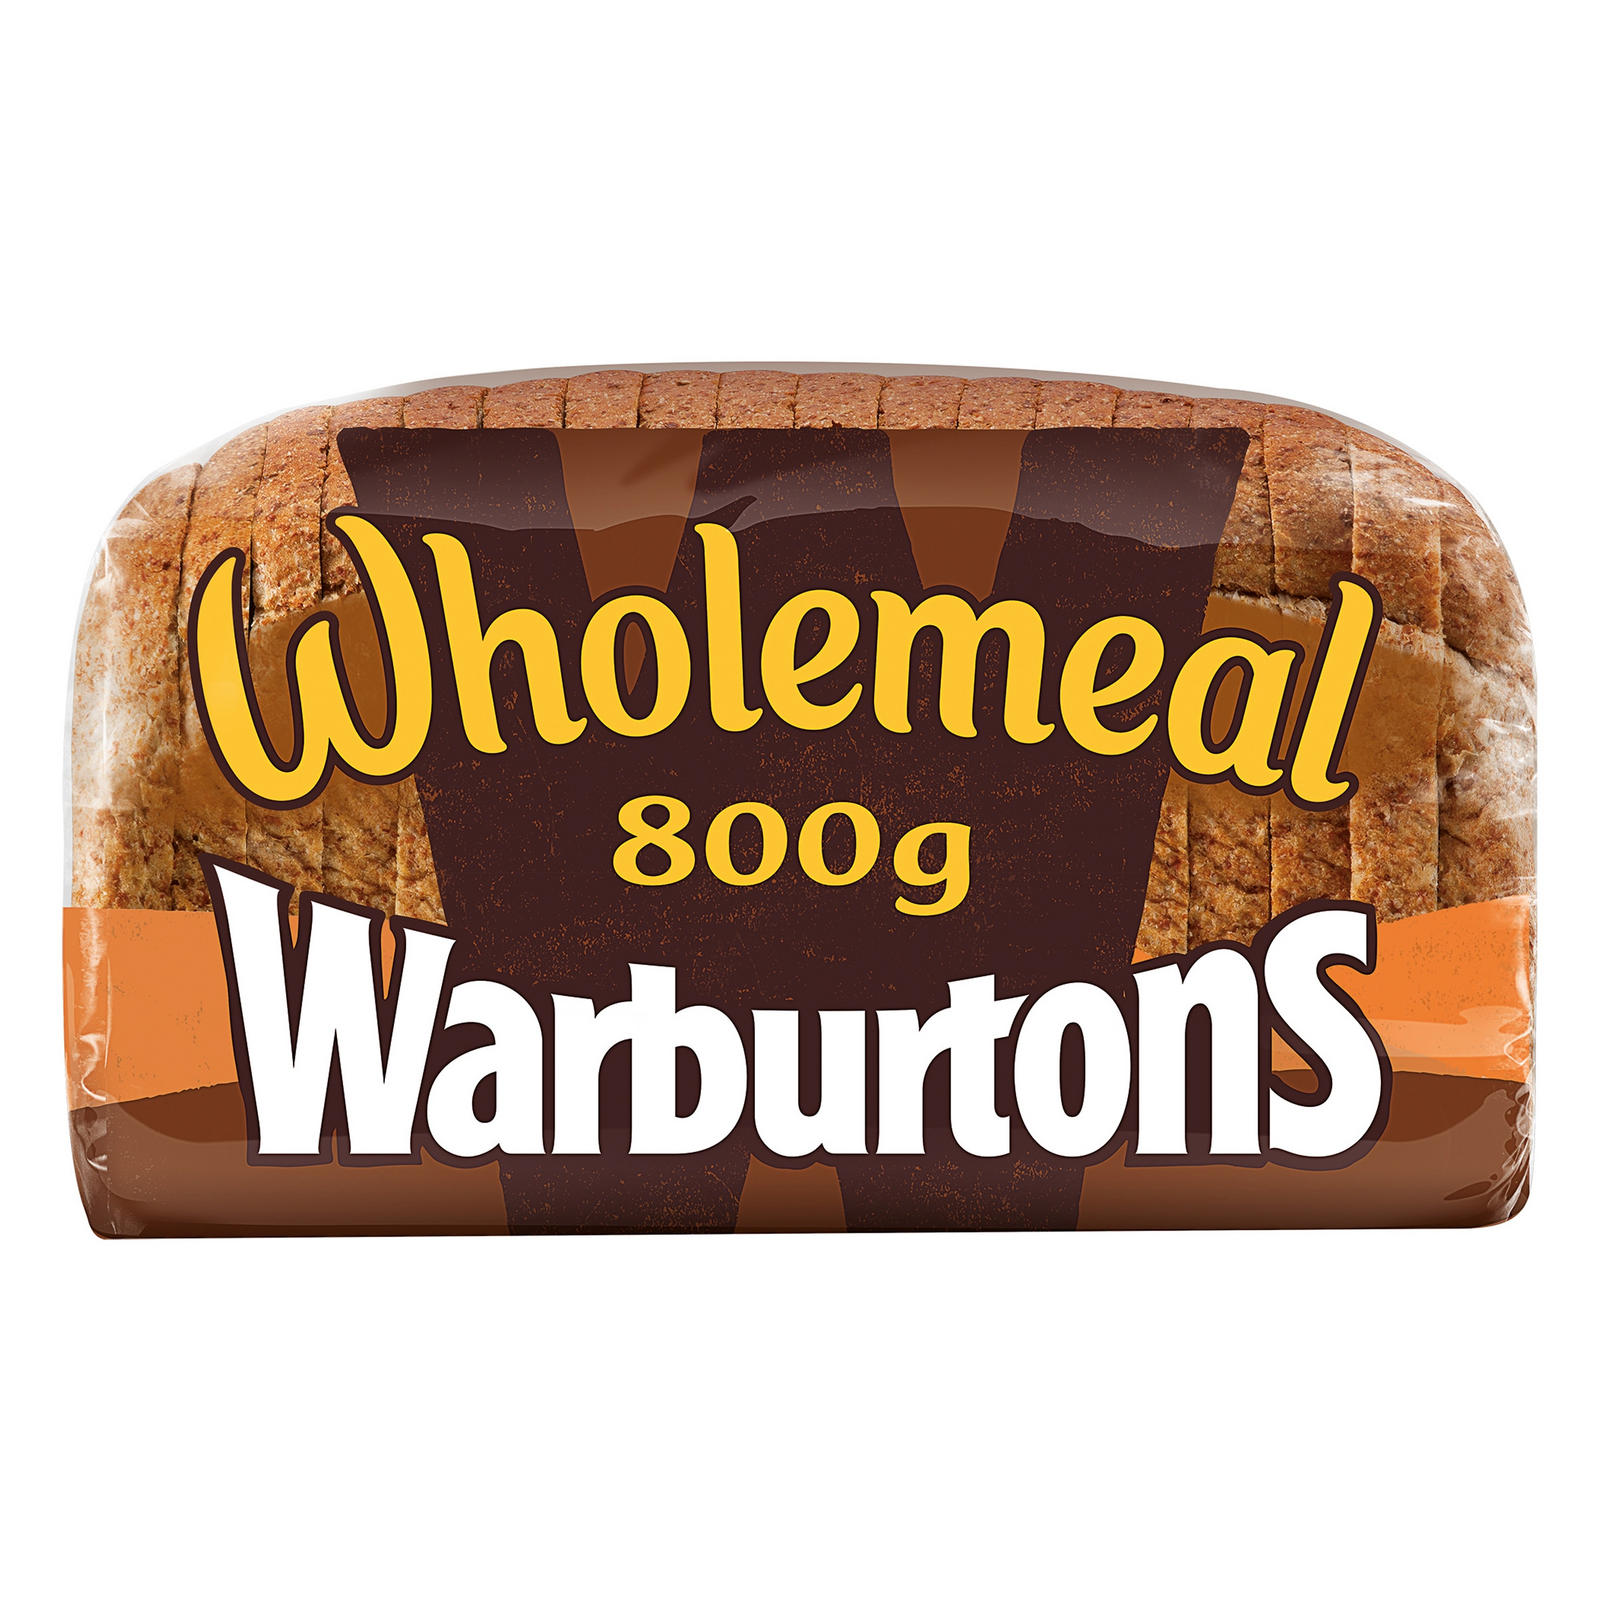 Warburtons 800g Wholemeal Sliced